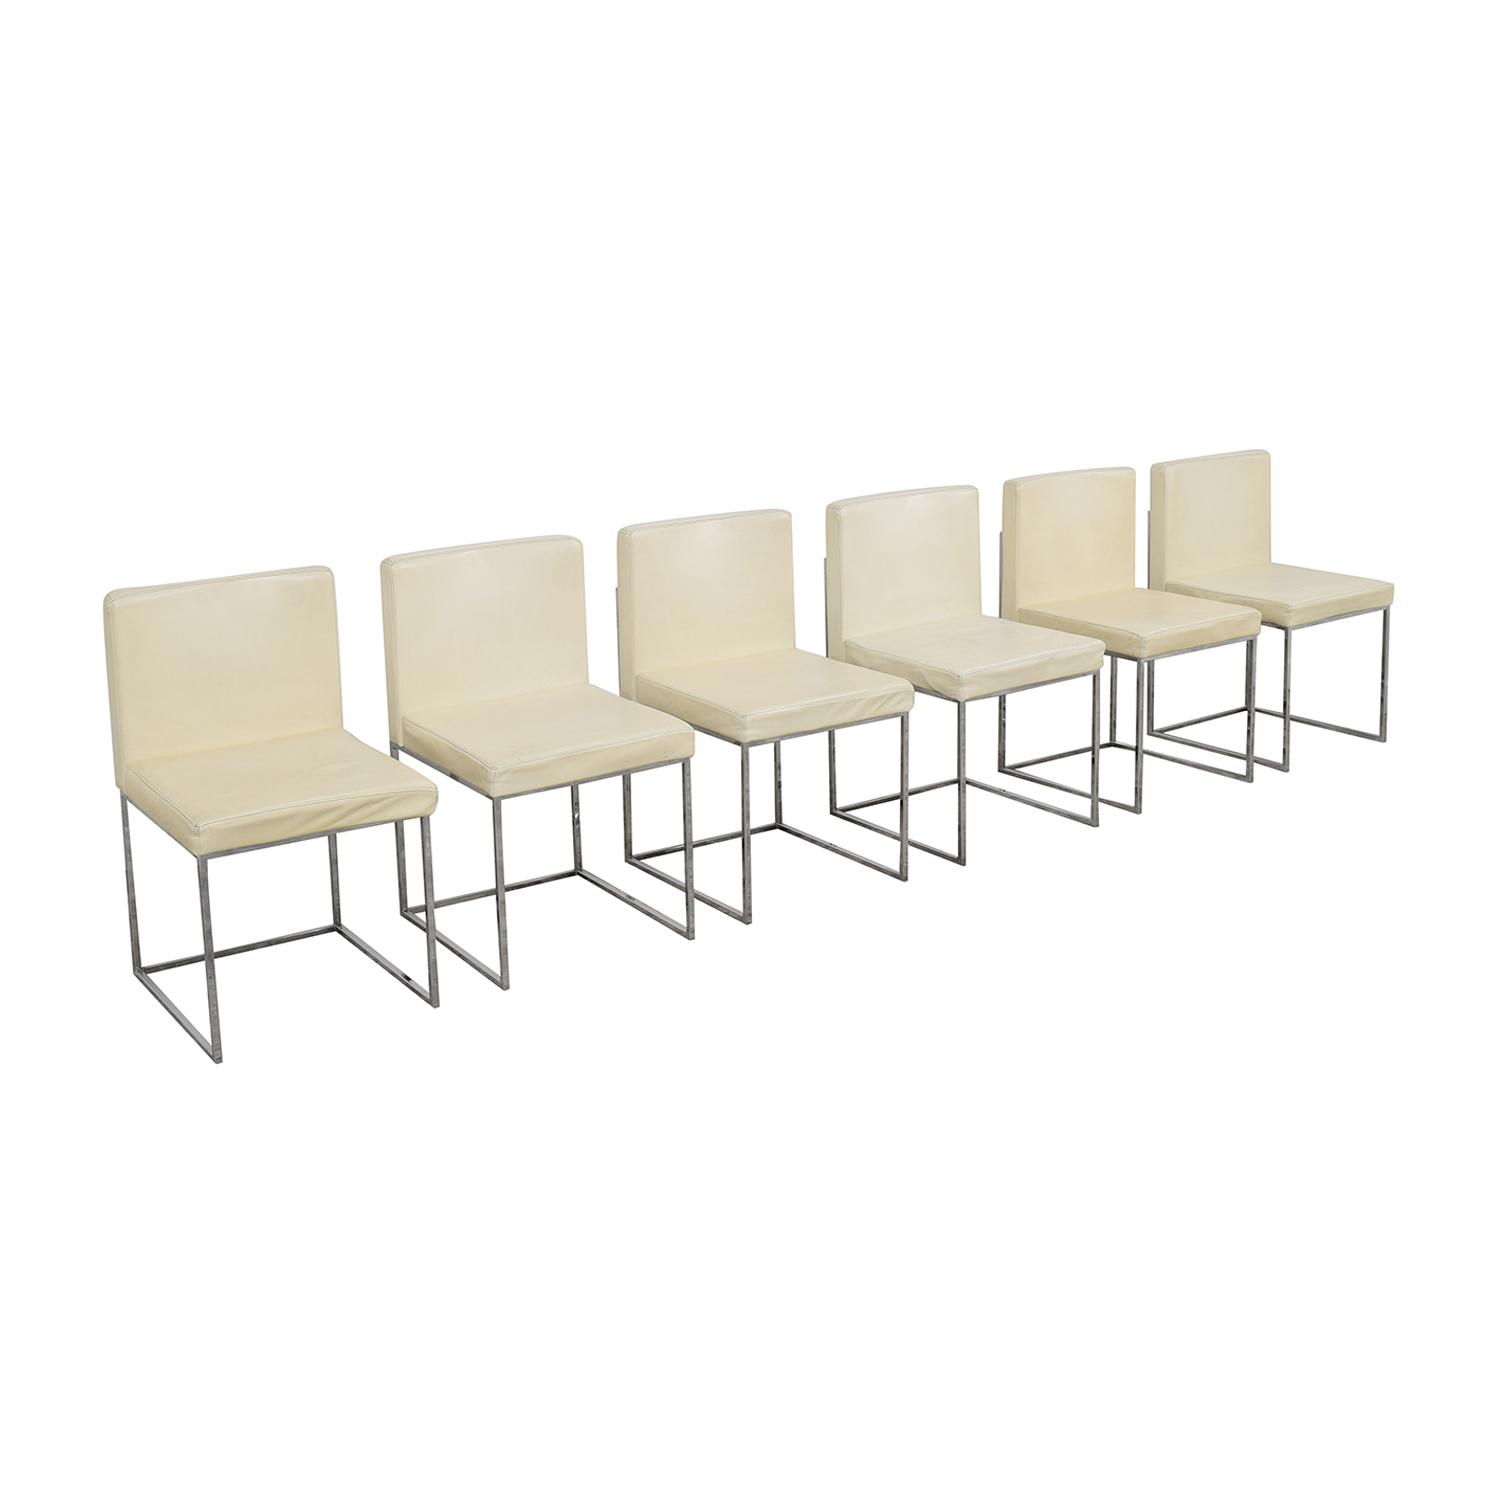 buy Calligaris Even Plus Leather Chairs Calligaris Dining Chairs